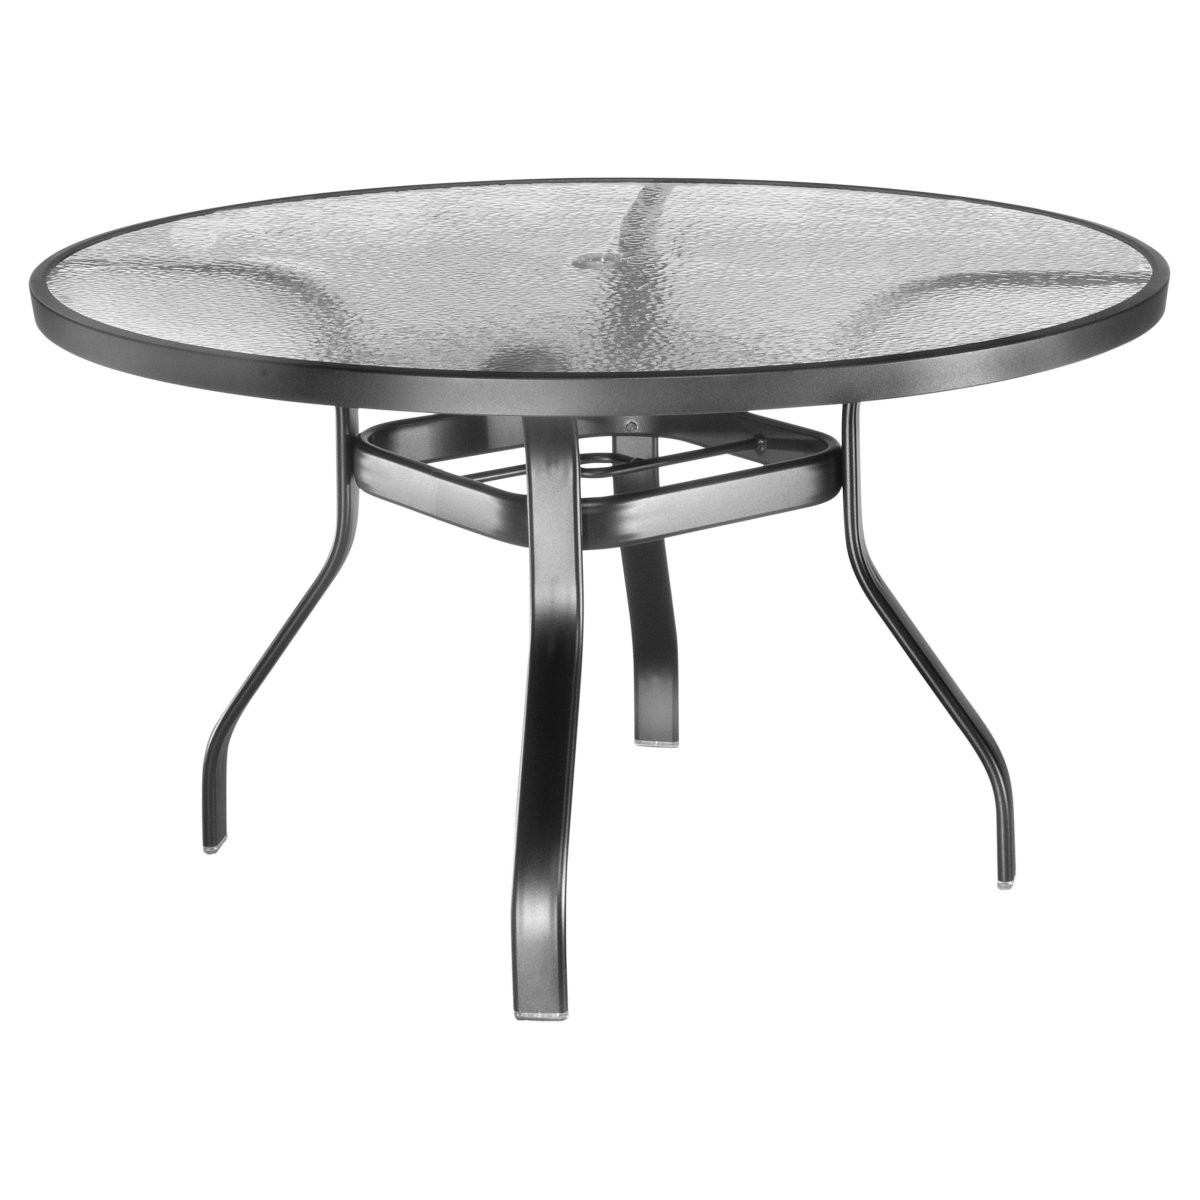 Best ideas about Round Patio Dining Table . Save or Pin Lloyd Flanders Mandalay 54 in Round Sea Glass Patio Now.